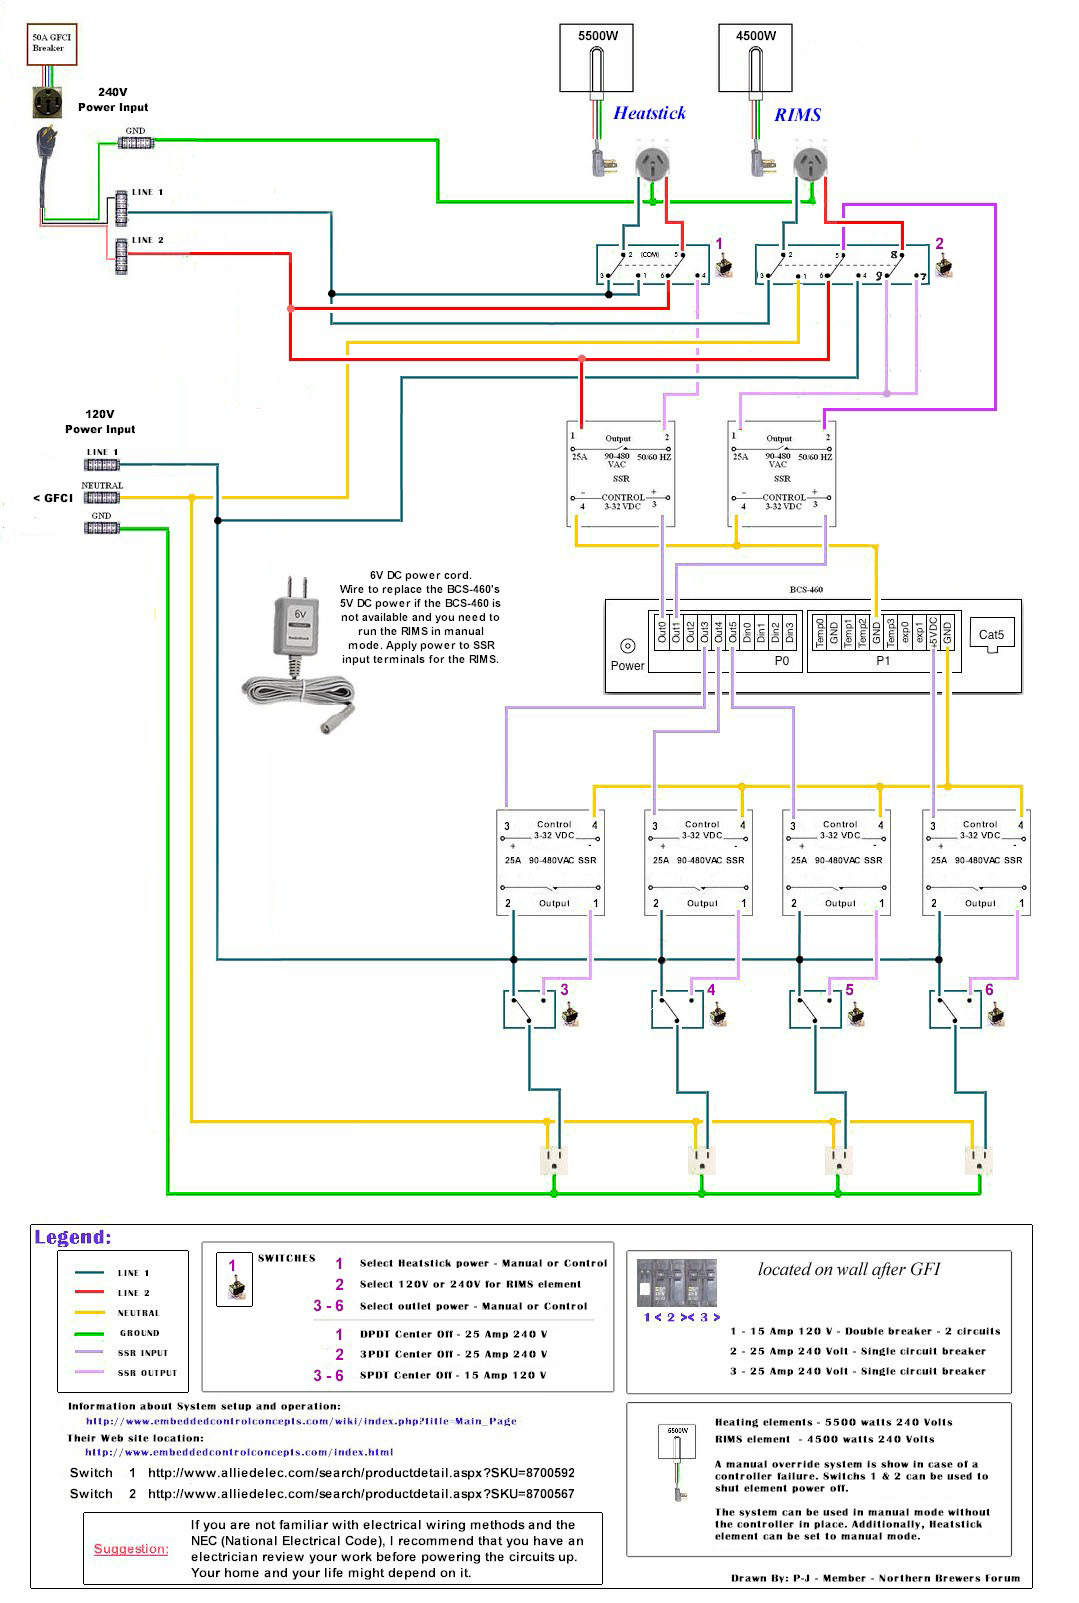 Bcs 460 Wiring Diagram Free For You 4 Wire Sensor Brewery Controller Home Logo Rankings 2013